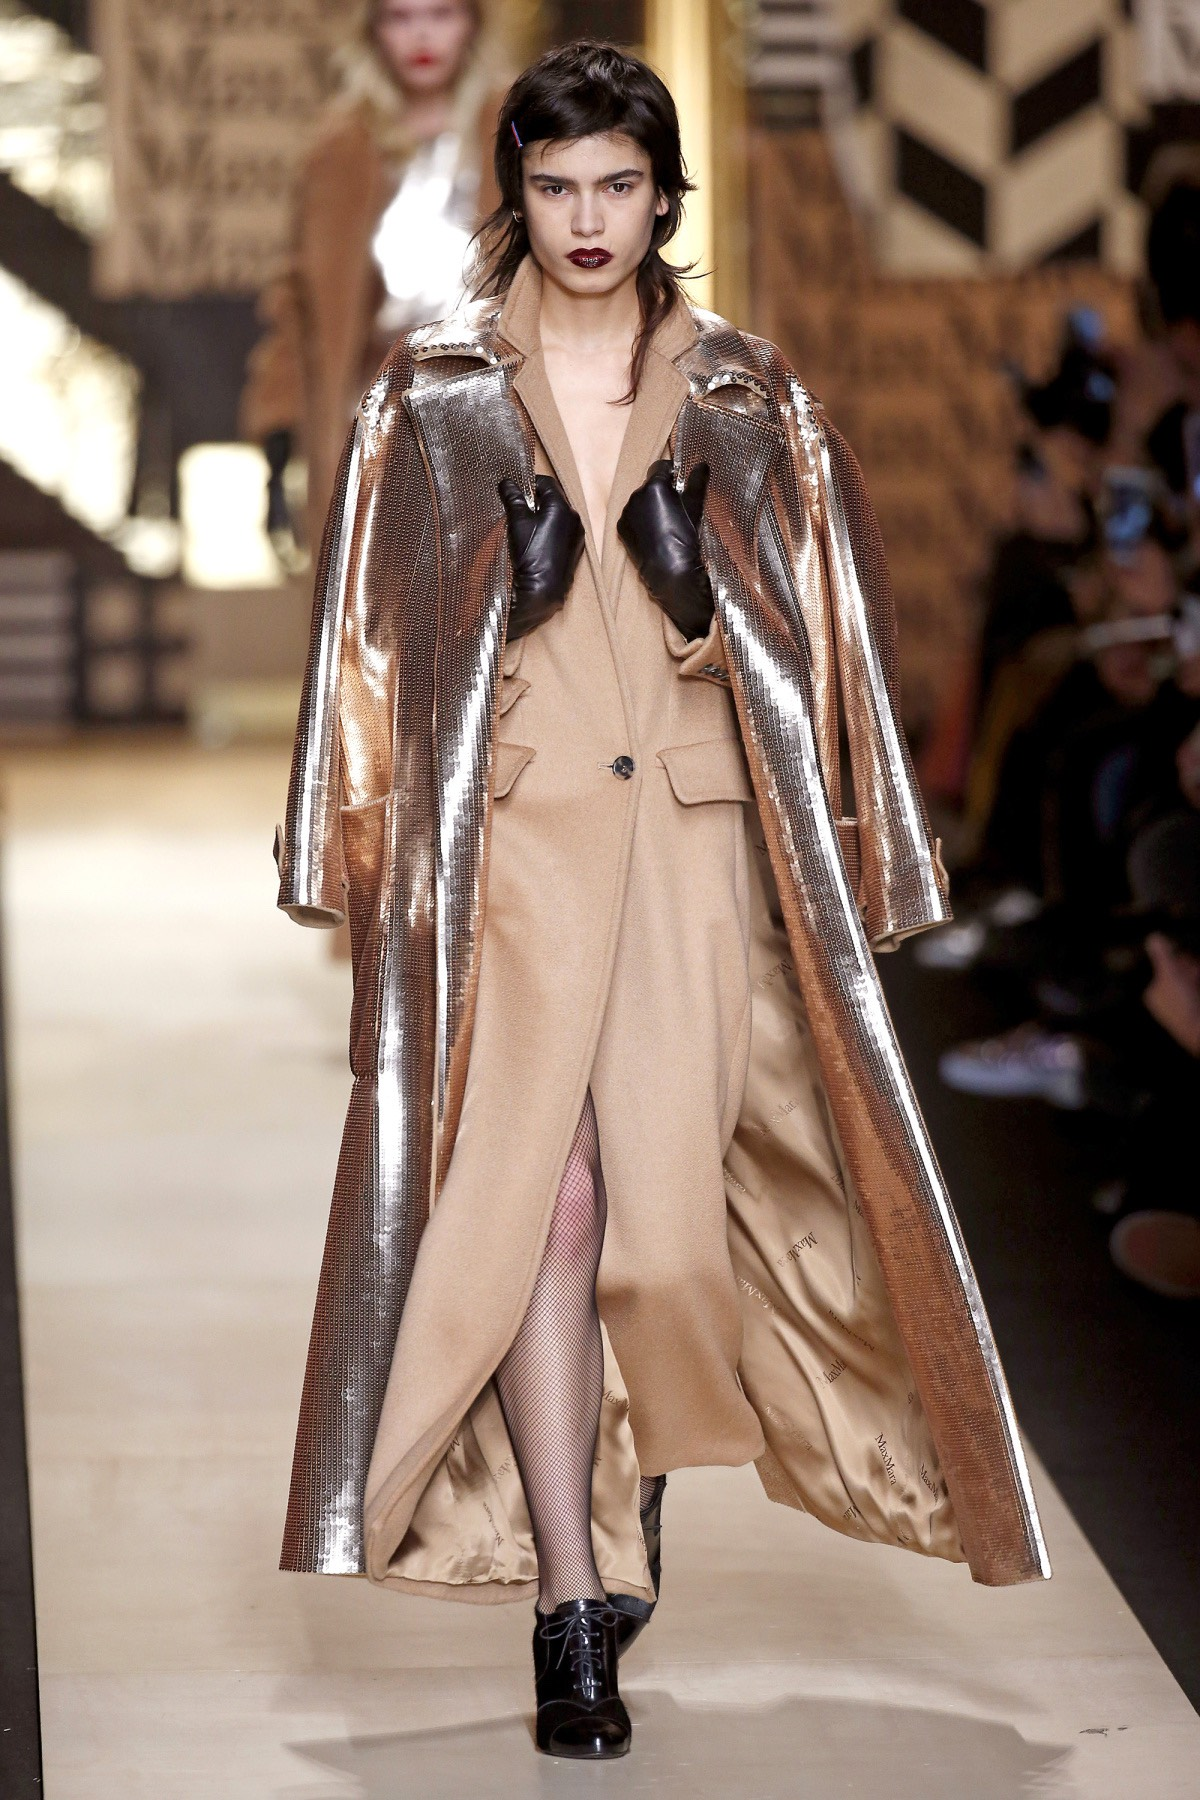 Max Mara Sfilata Donna Autunno Inverno 2016 2017 Foto E Video